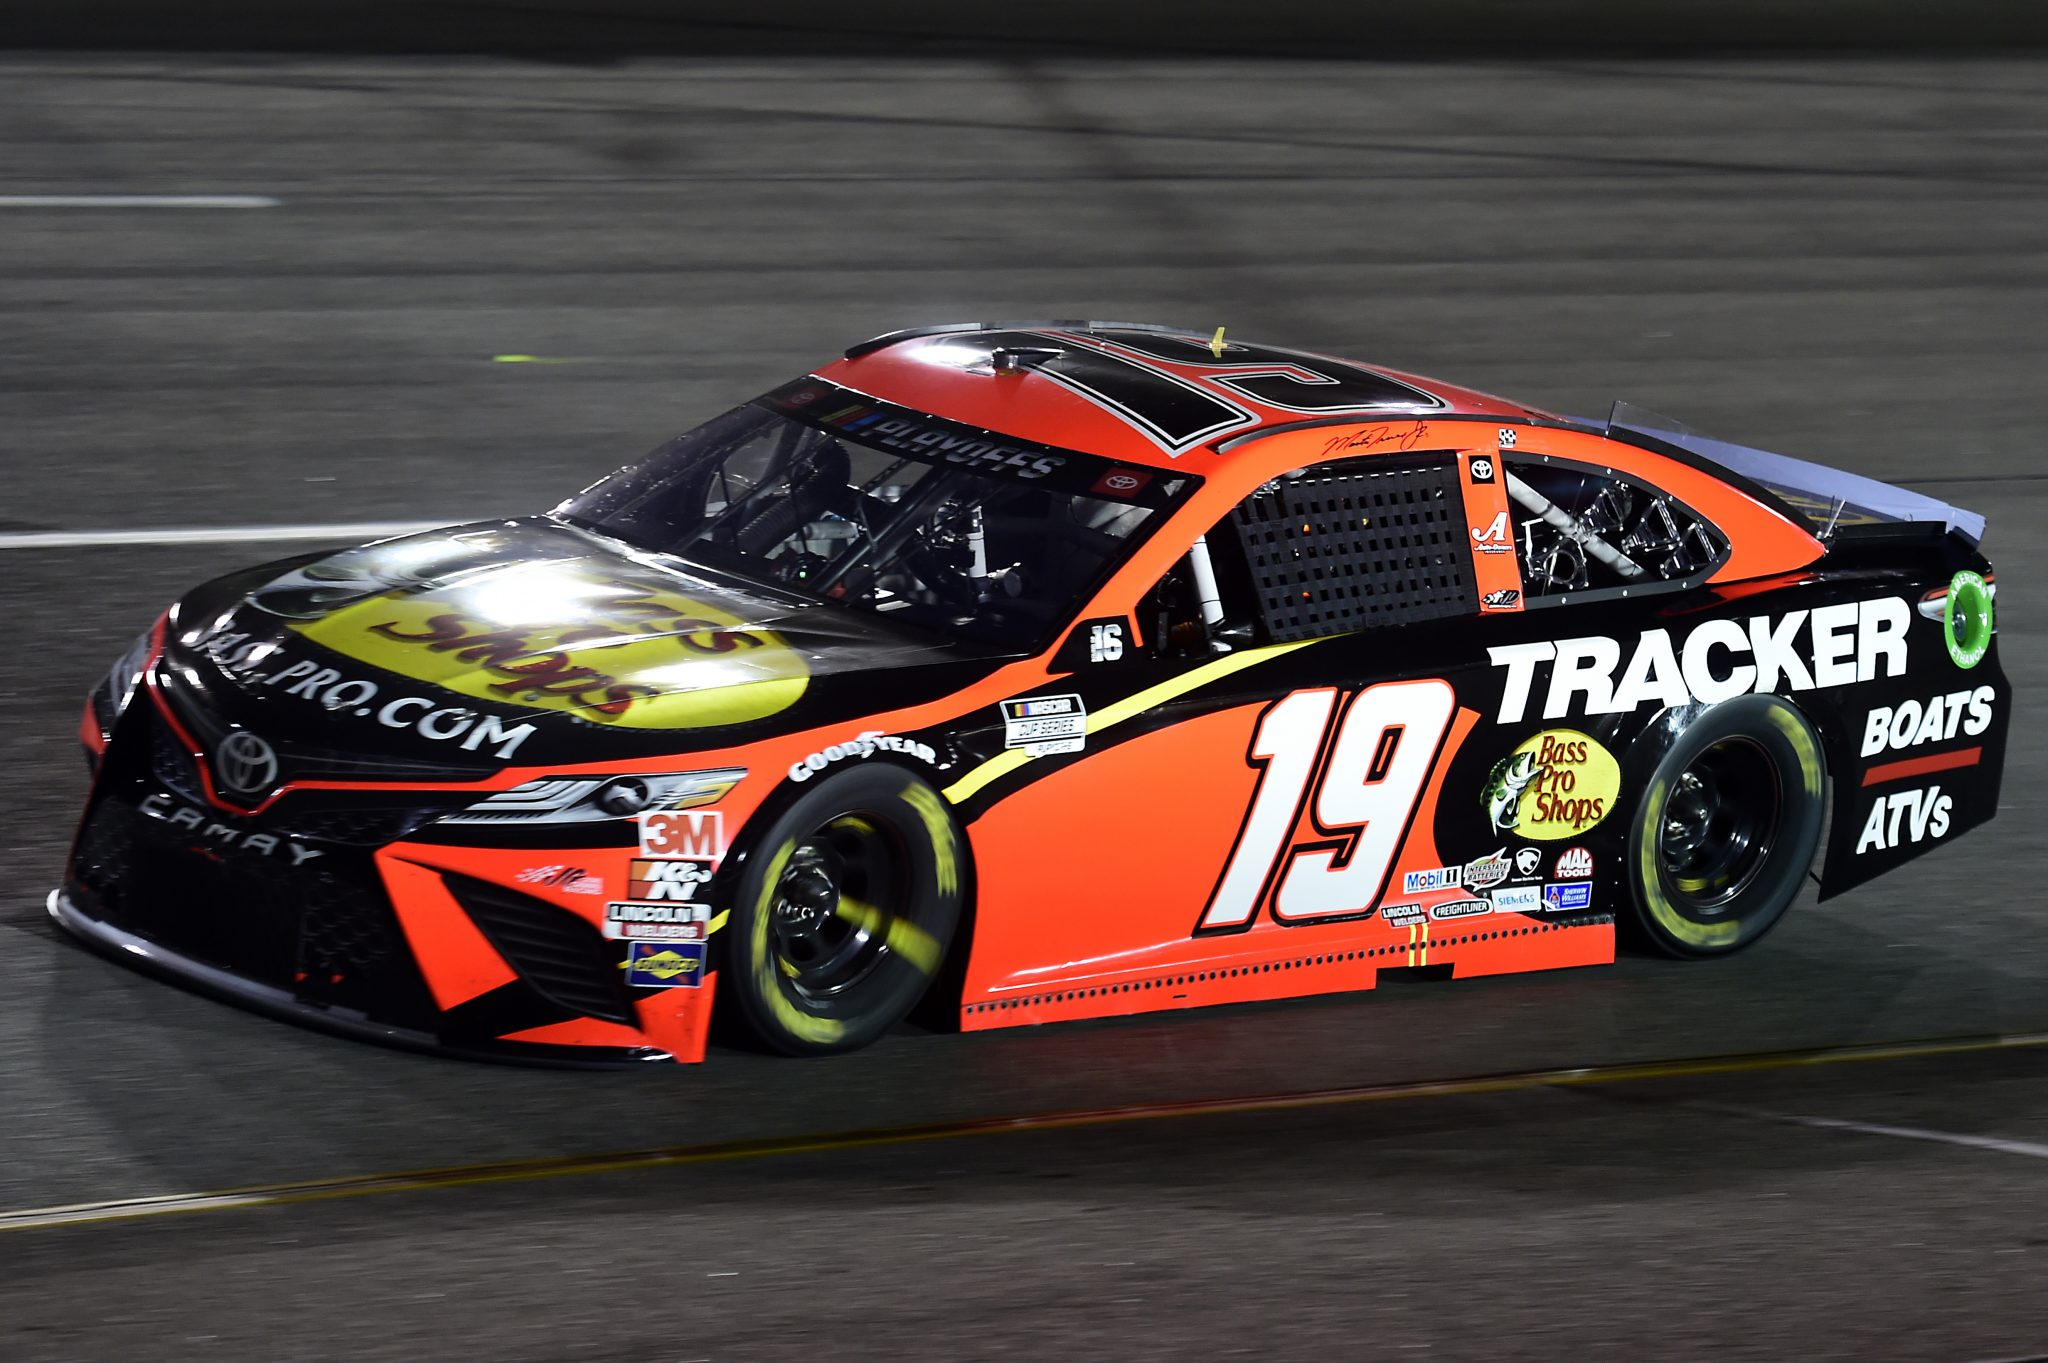 RICHMOND, VIRGINIA - SEPTEMBER 12: Martin Truex Jr., driver of the #19 Bass Pro Shops Toyota, drives during the NASCAR Cup Series Federated Auto Parts 400 at Richmond Raceway on September 12, 2020 in Richmond, Virginia. (Photo by Jared C. Tilton/Getty Images) | Getty Images